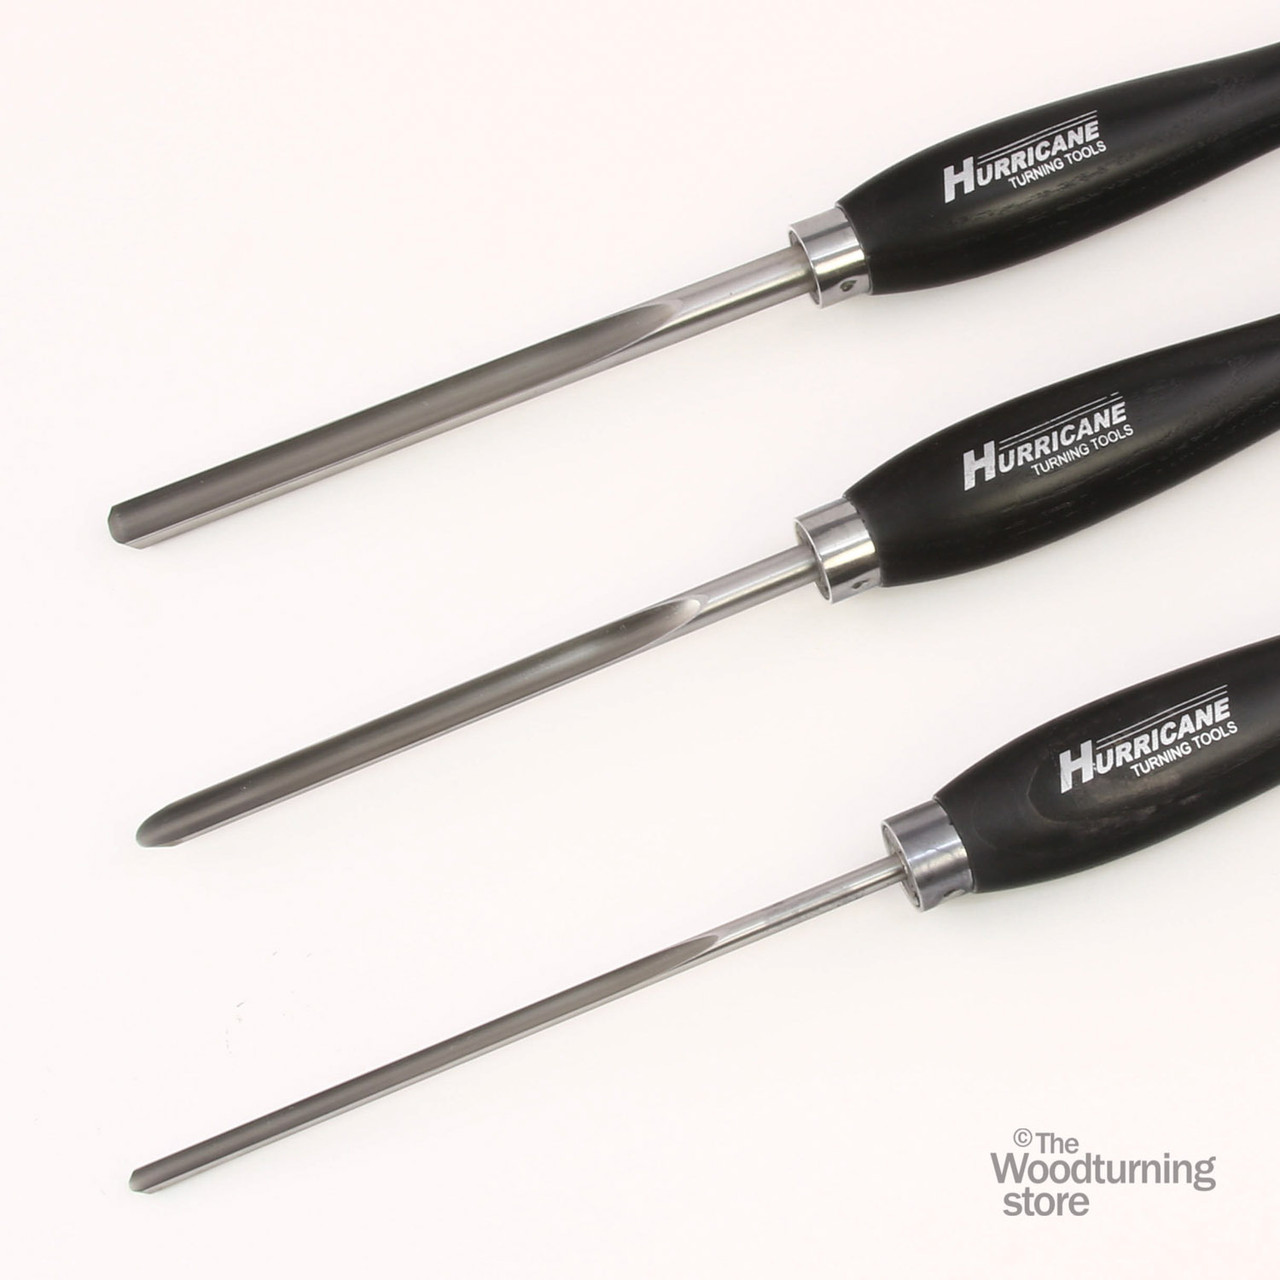 """Hurricane M2 Cryo, 3 Piece Spindle Gouge Pro Tool Set (1/2"""", 3/8"""" and 1/4"""" Flute)"""